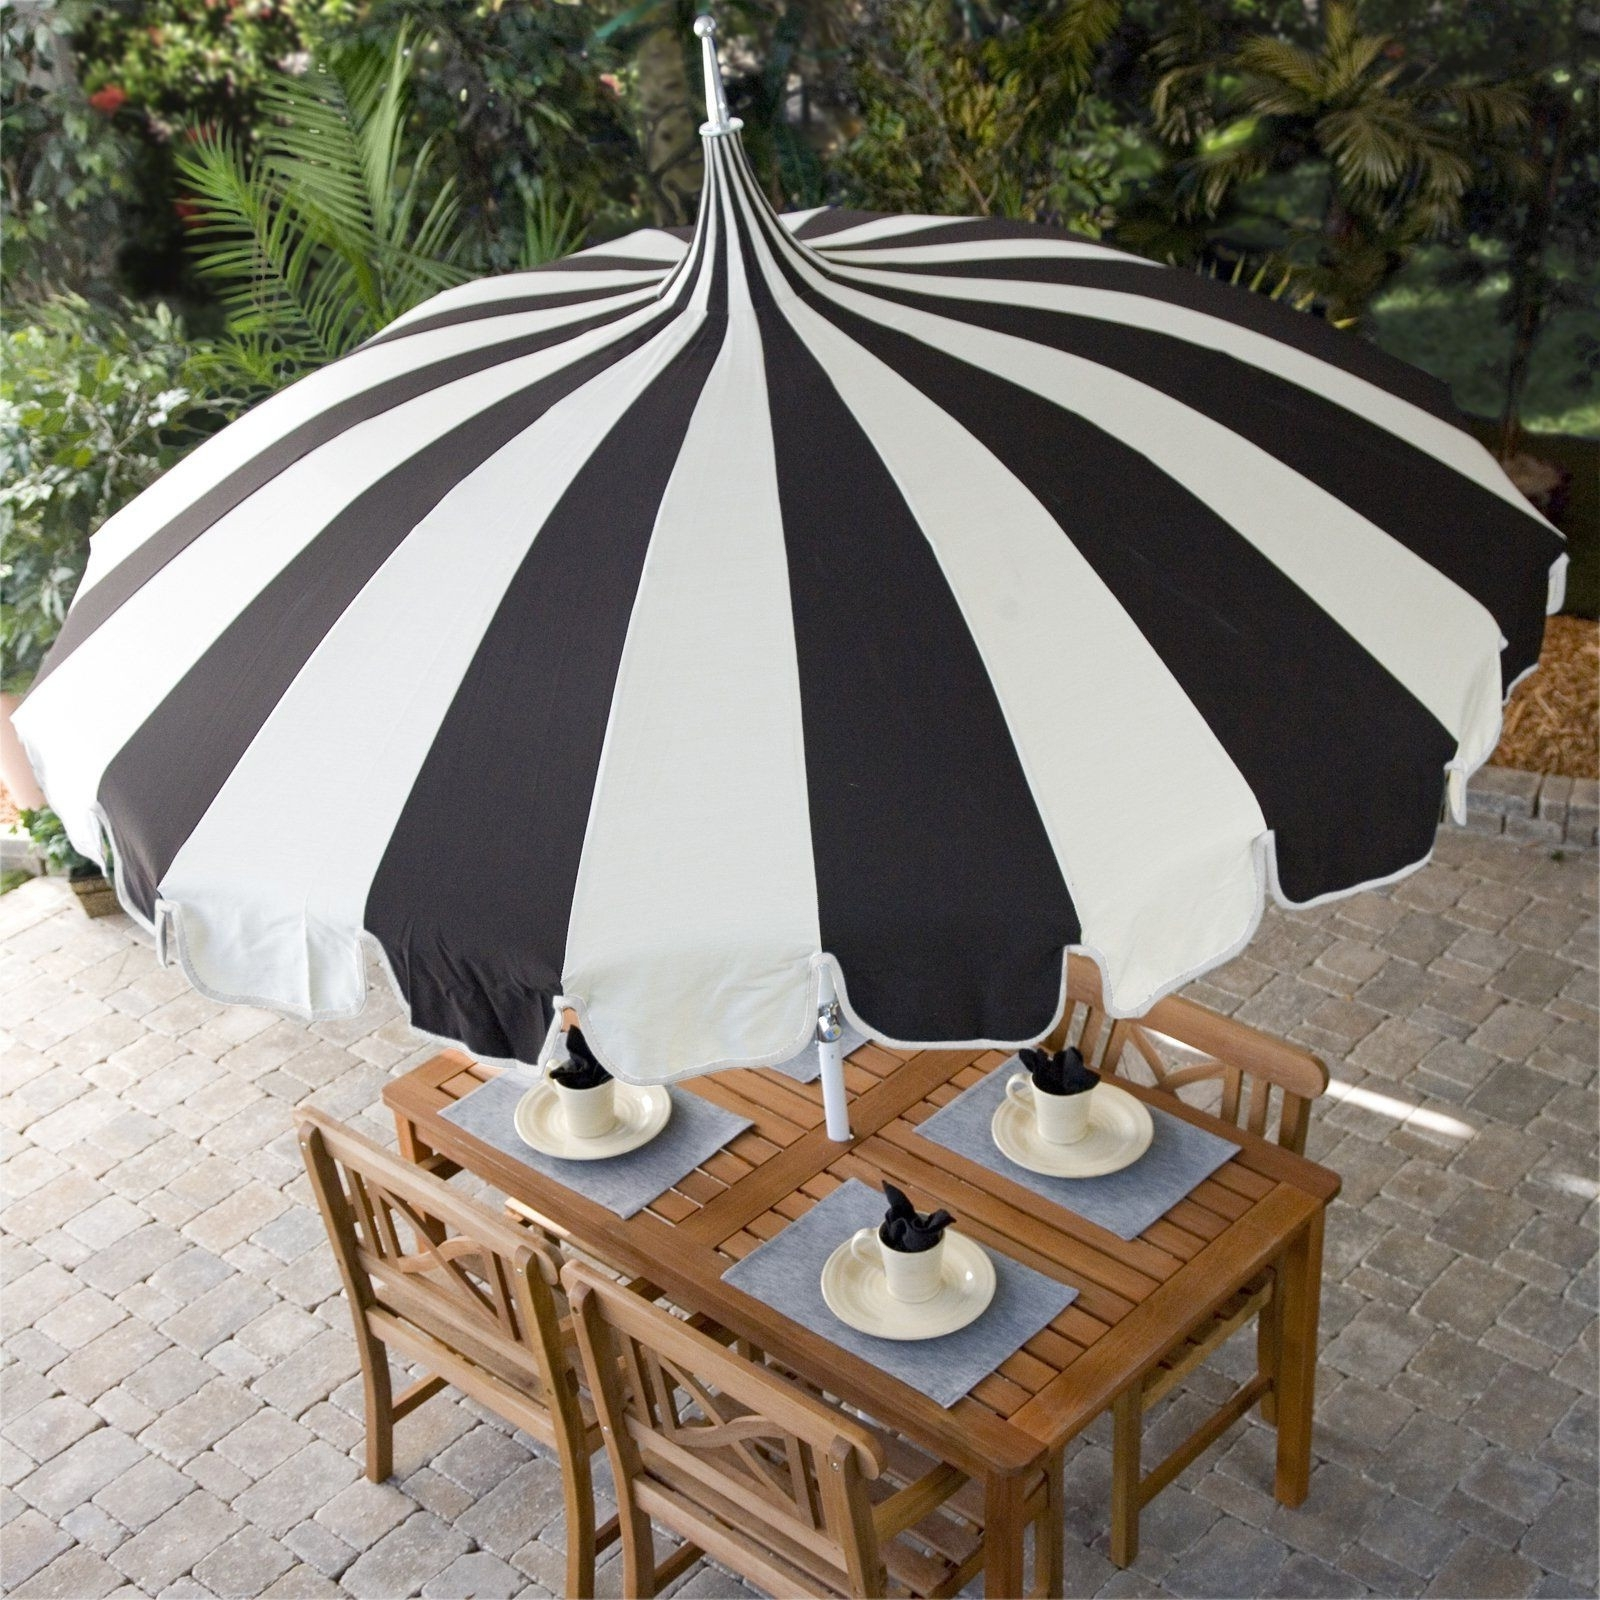 Lowes Patio Umbrella Best Of Have To Have It Pagoda 8 5 Ft Patio For Most Recent Patio Umbrellas At Lowes (View 19 of 20)